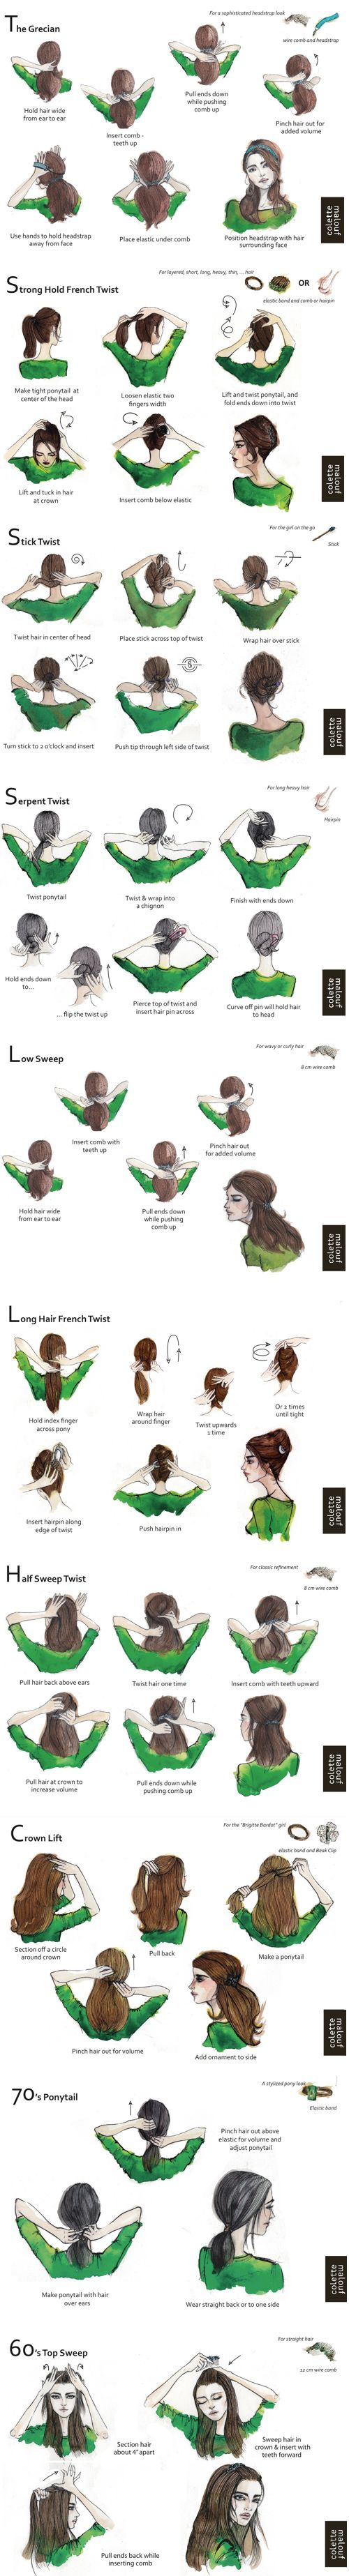 The grecian one is super easy and pretty  10 summer hairstyles - gorgeous illustrations